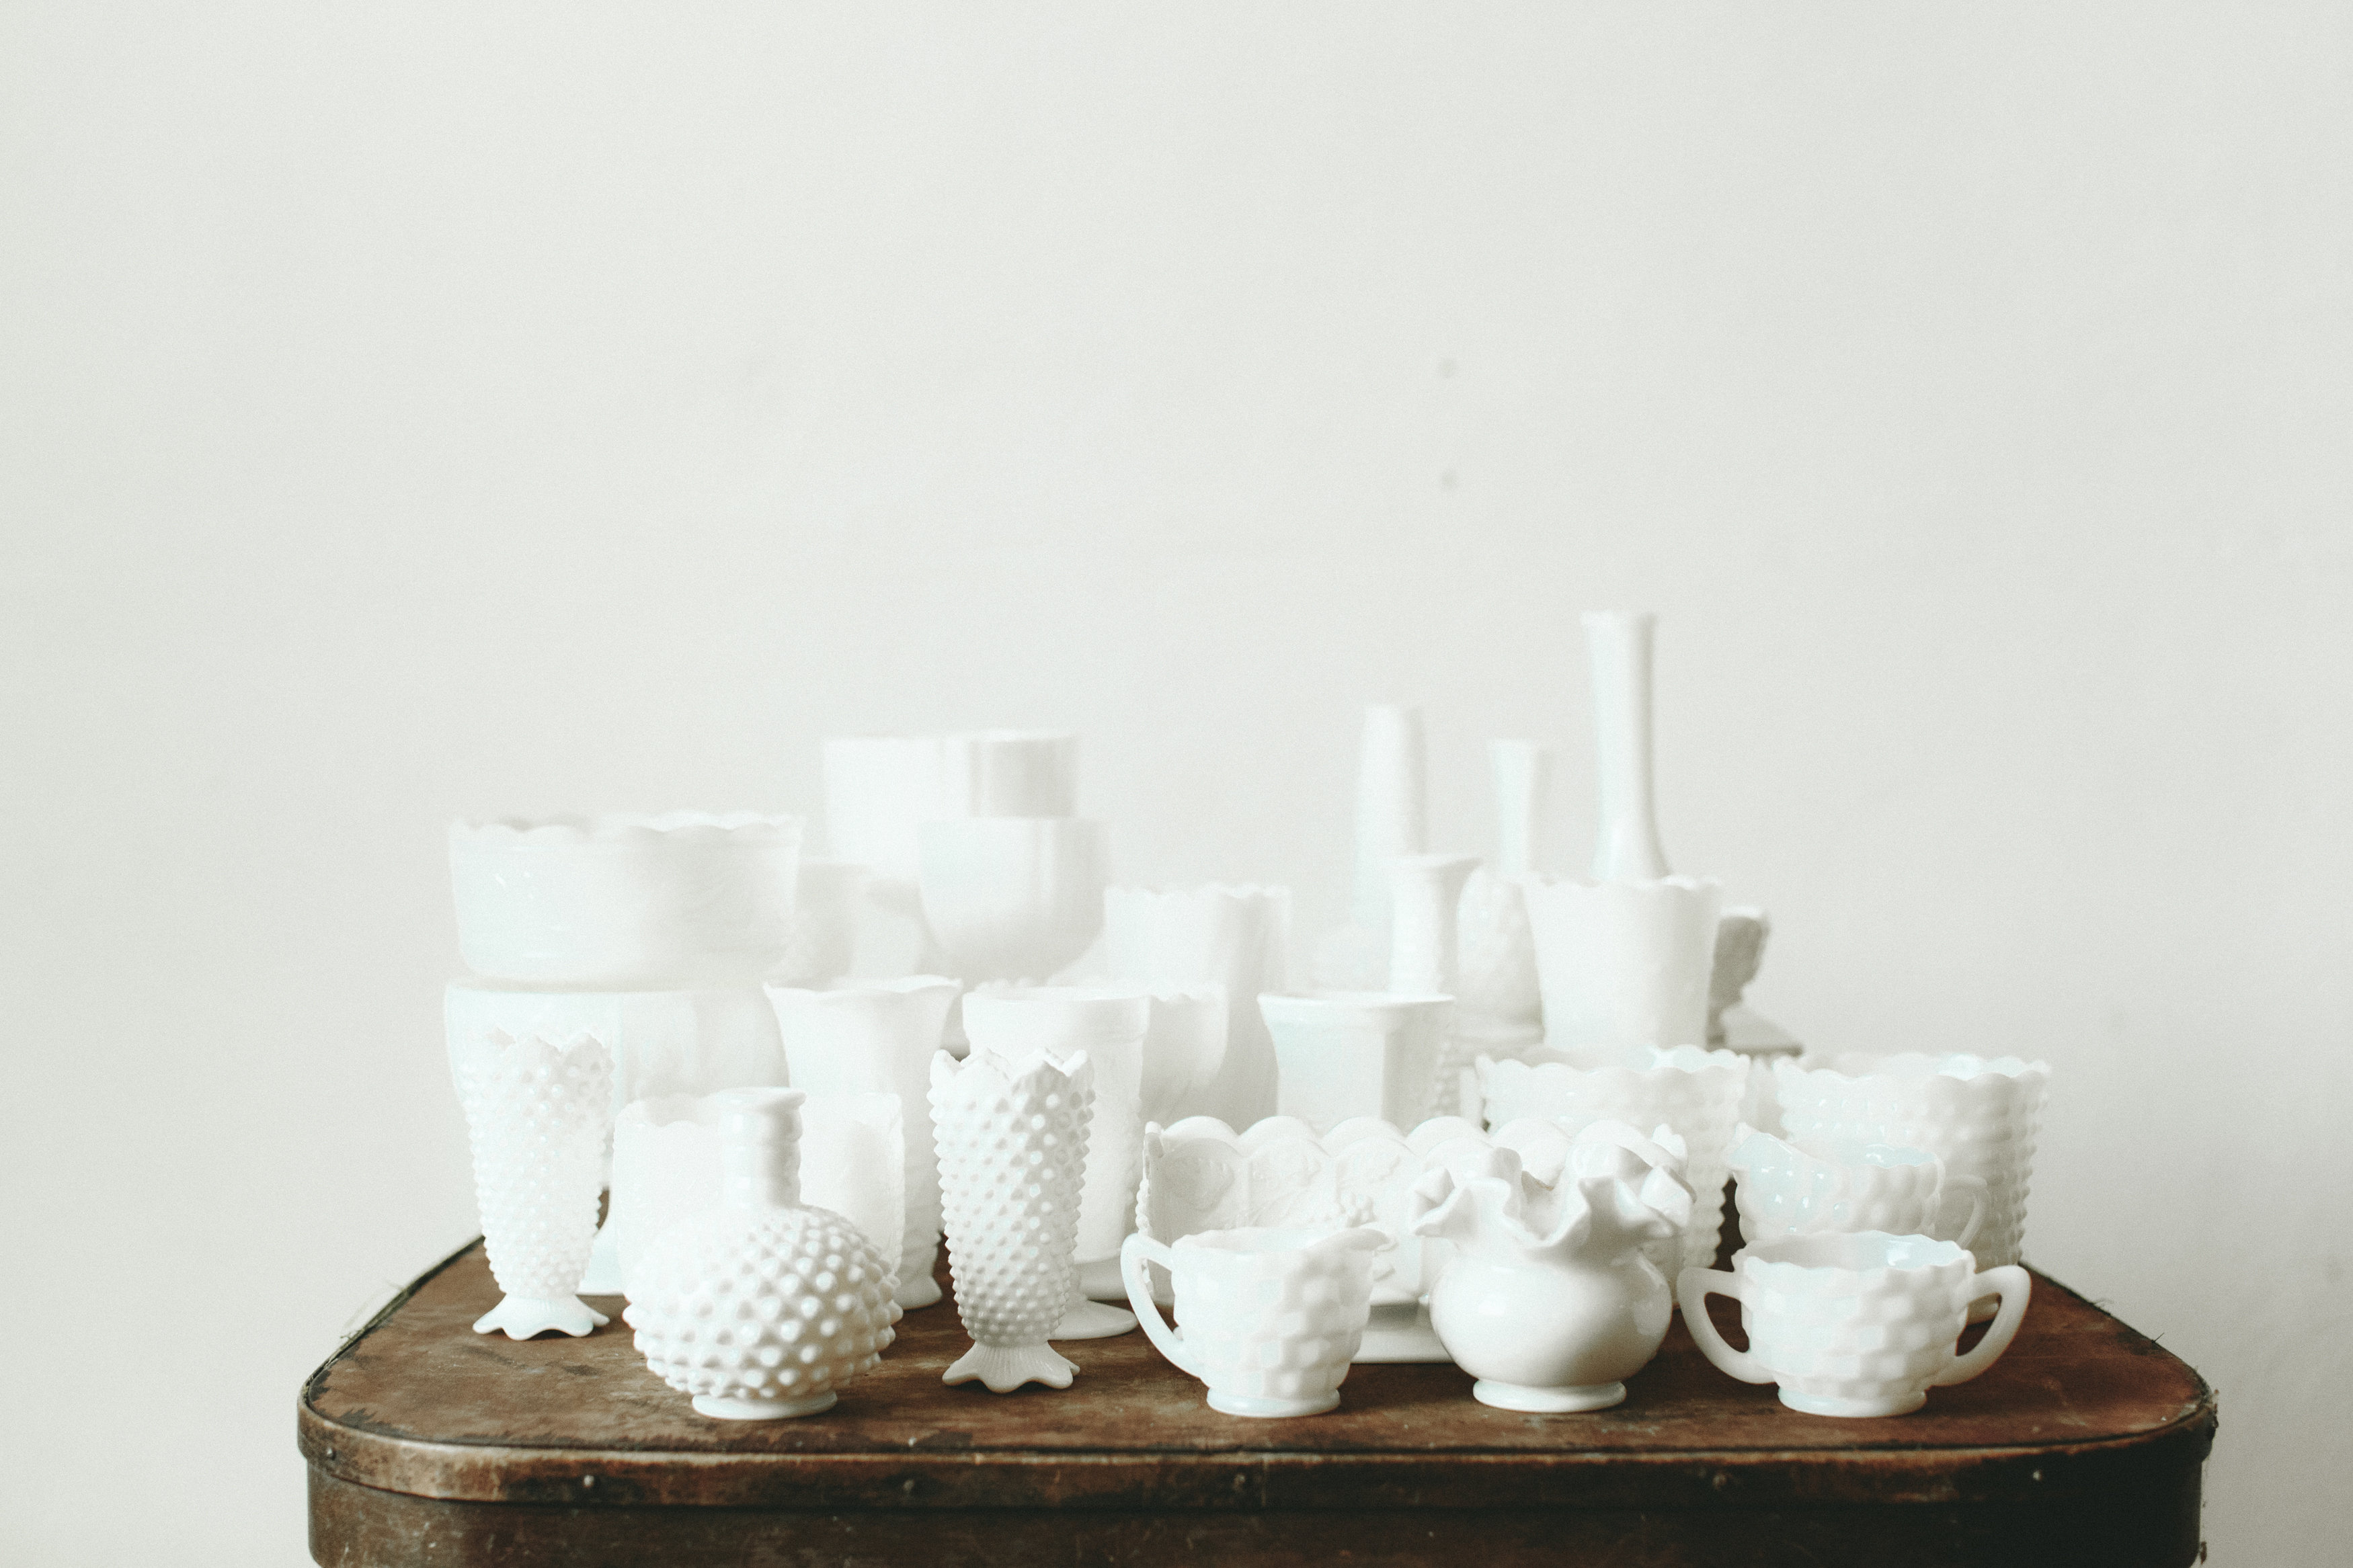 MILK GLASS VESSELS